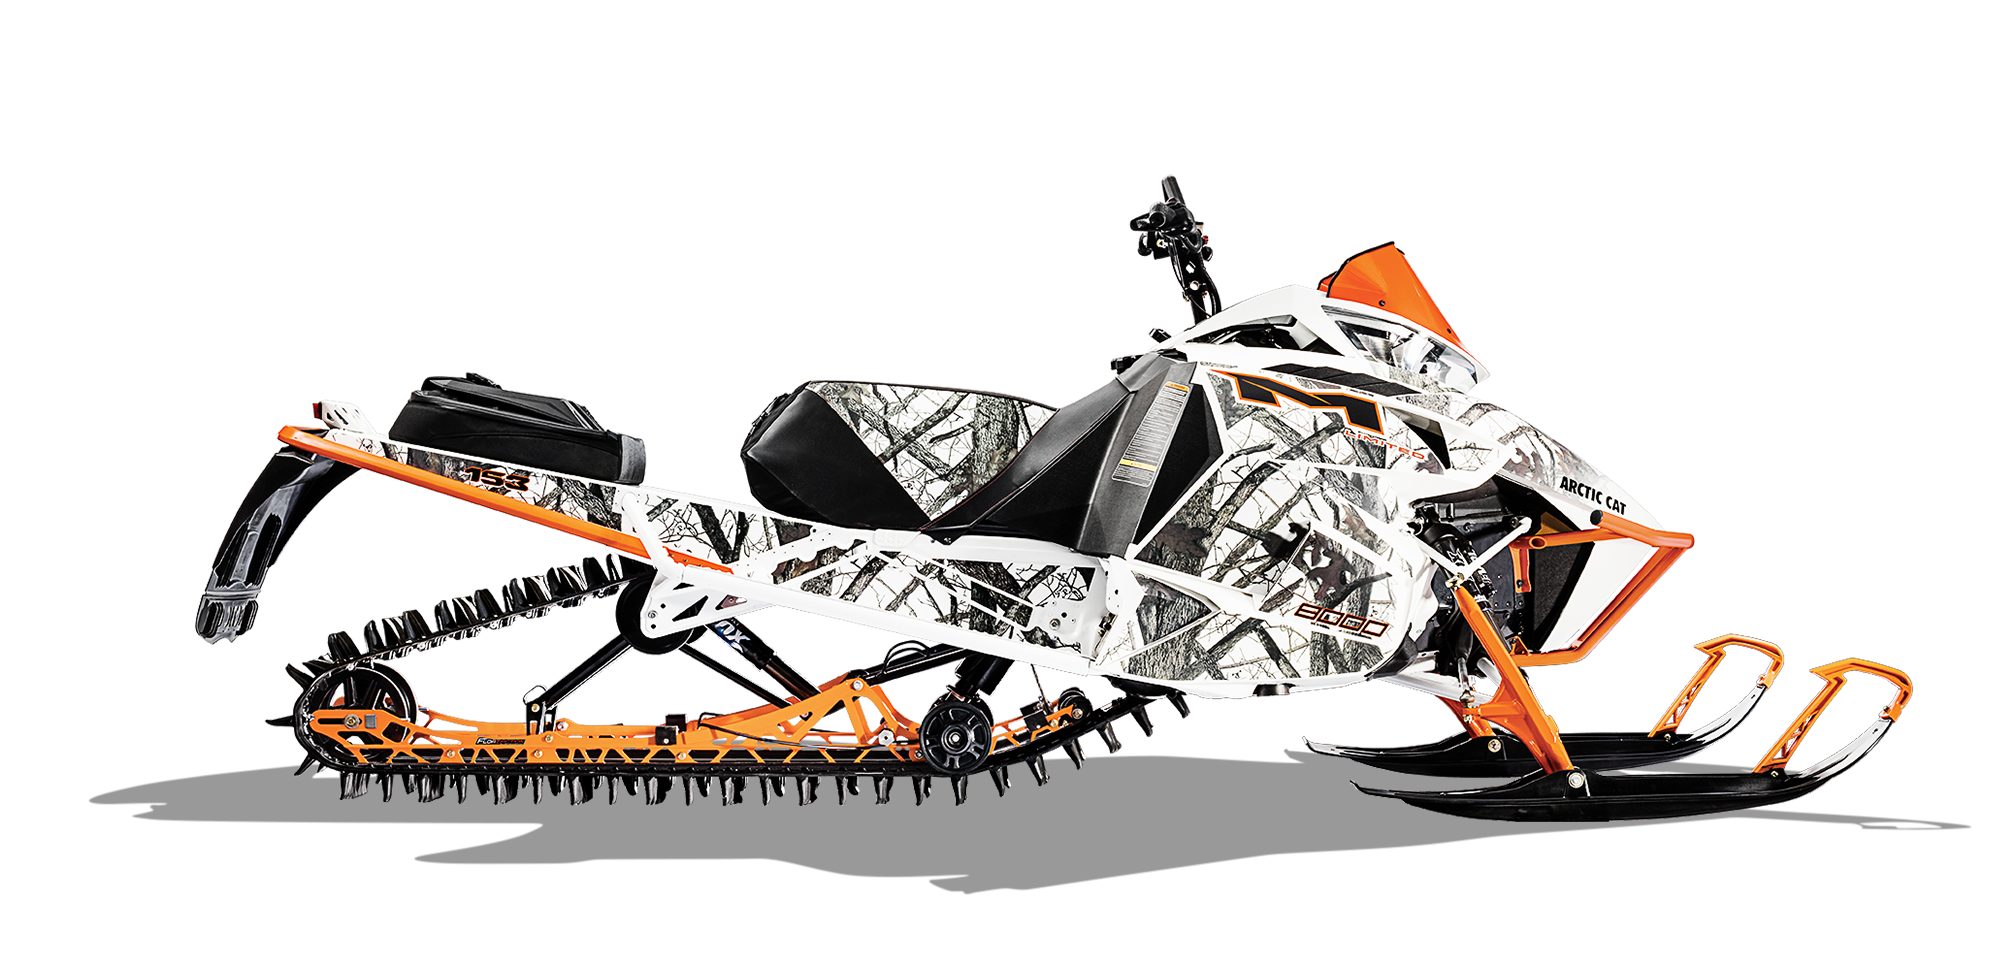 Artic cat snowmobile clipart black and white picture free stock M 8000 Limited (153) | Arctic Cat picture free stock